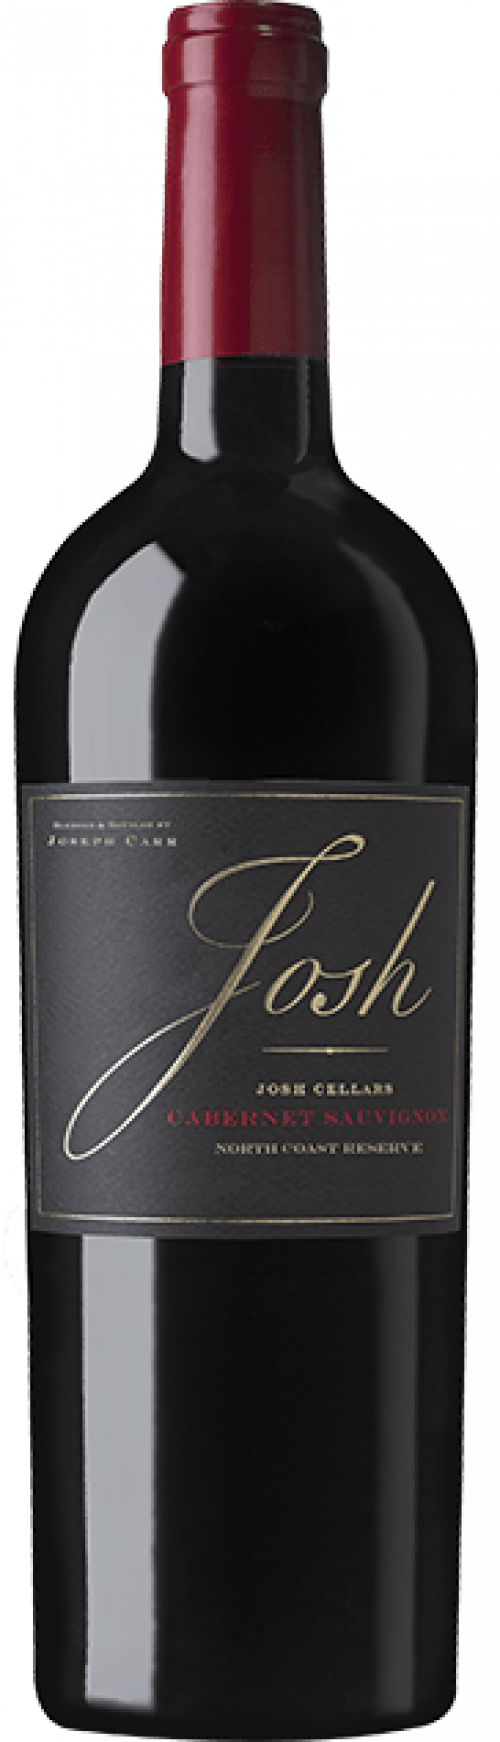 2015 Josh Cellars North Coast Cabernet Sauvignon 750ml